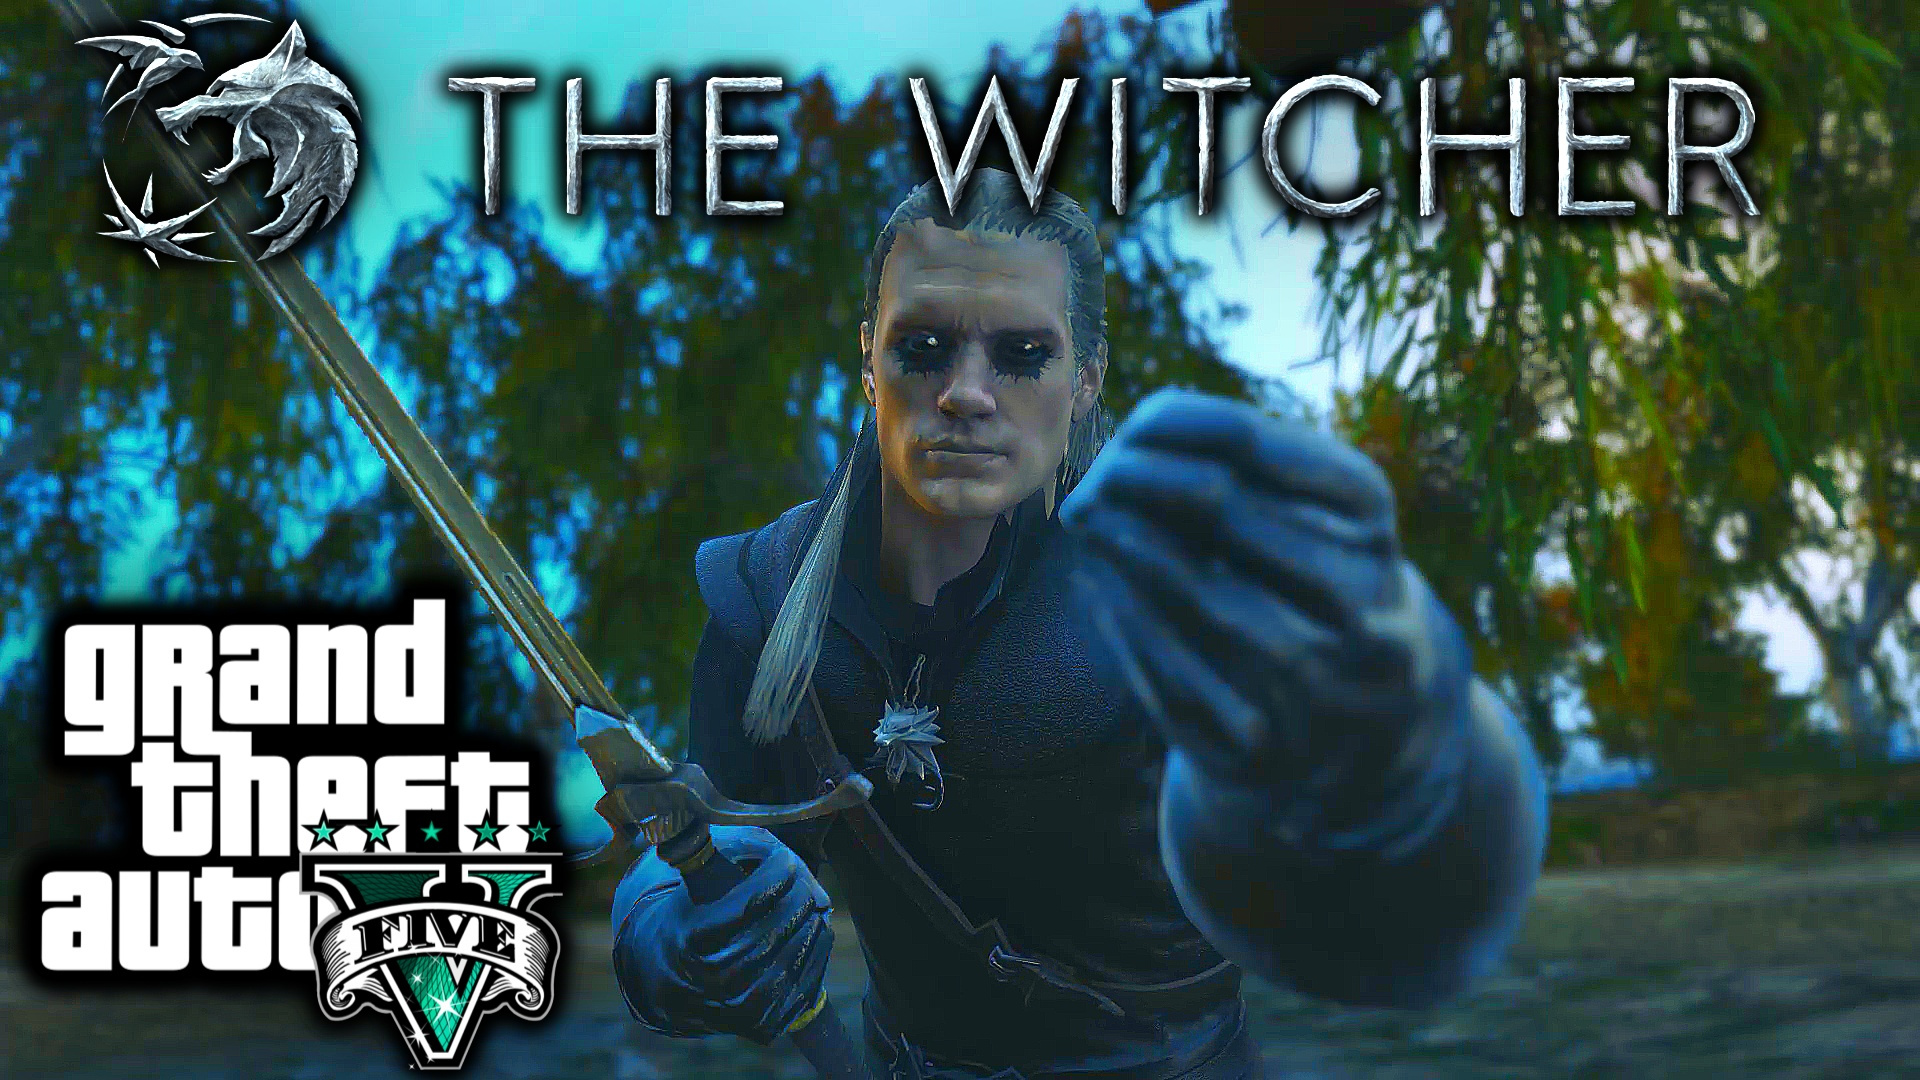 The Witcher Monster Killer Eyes Gta5 Mods Com